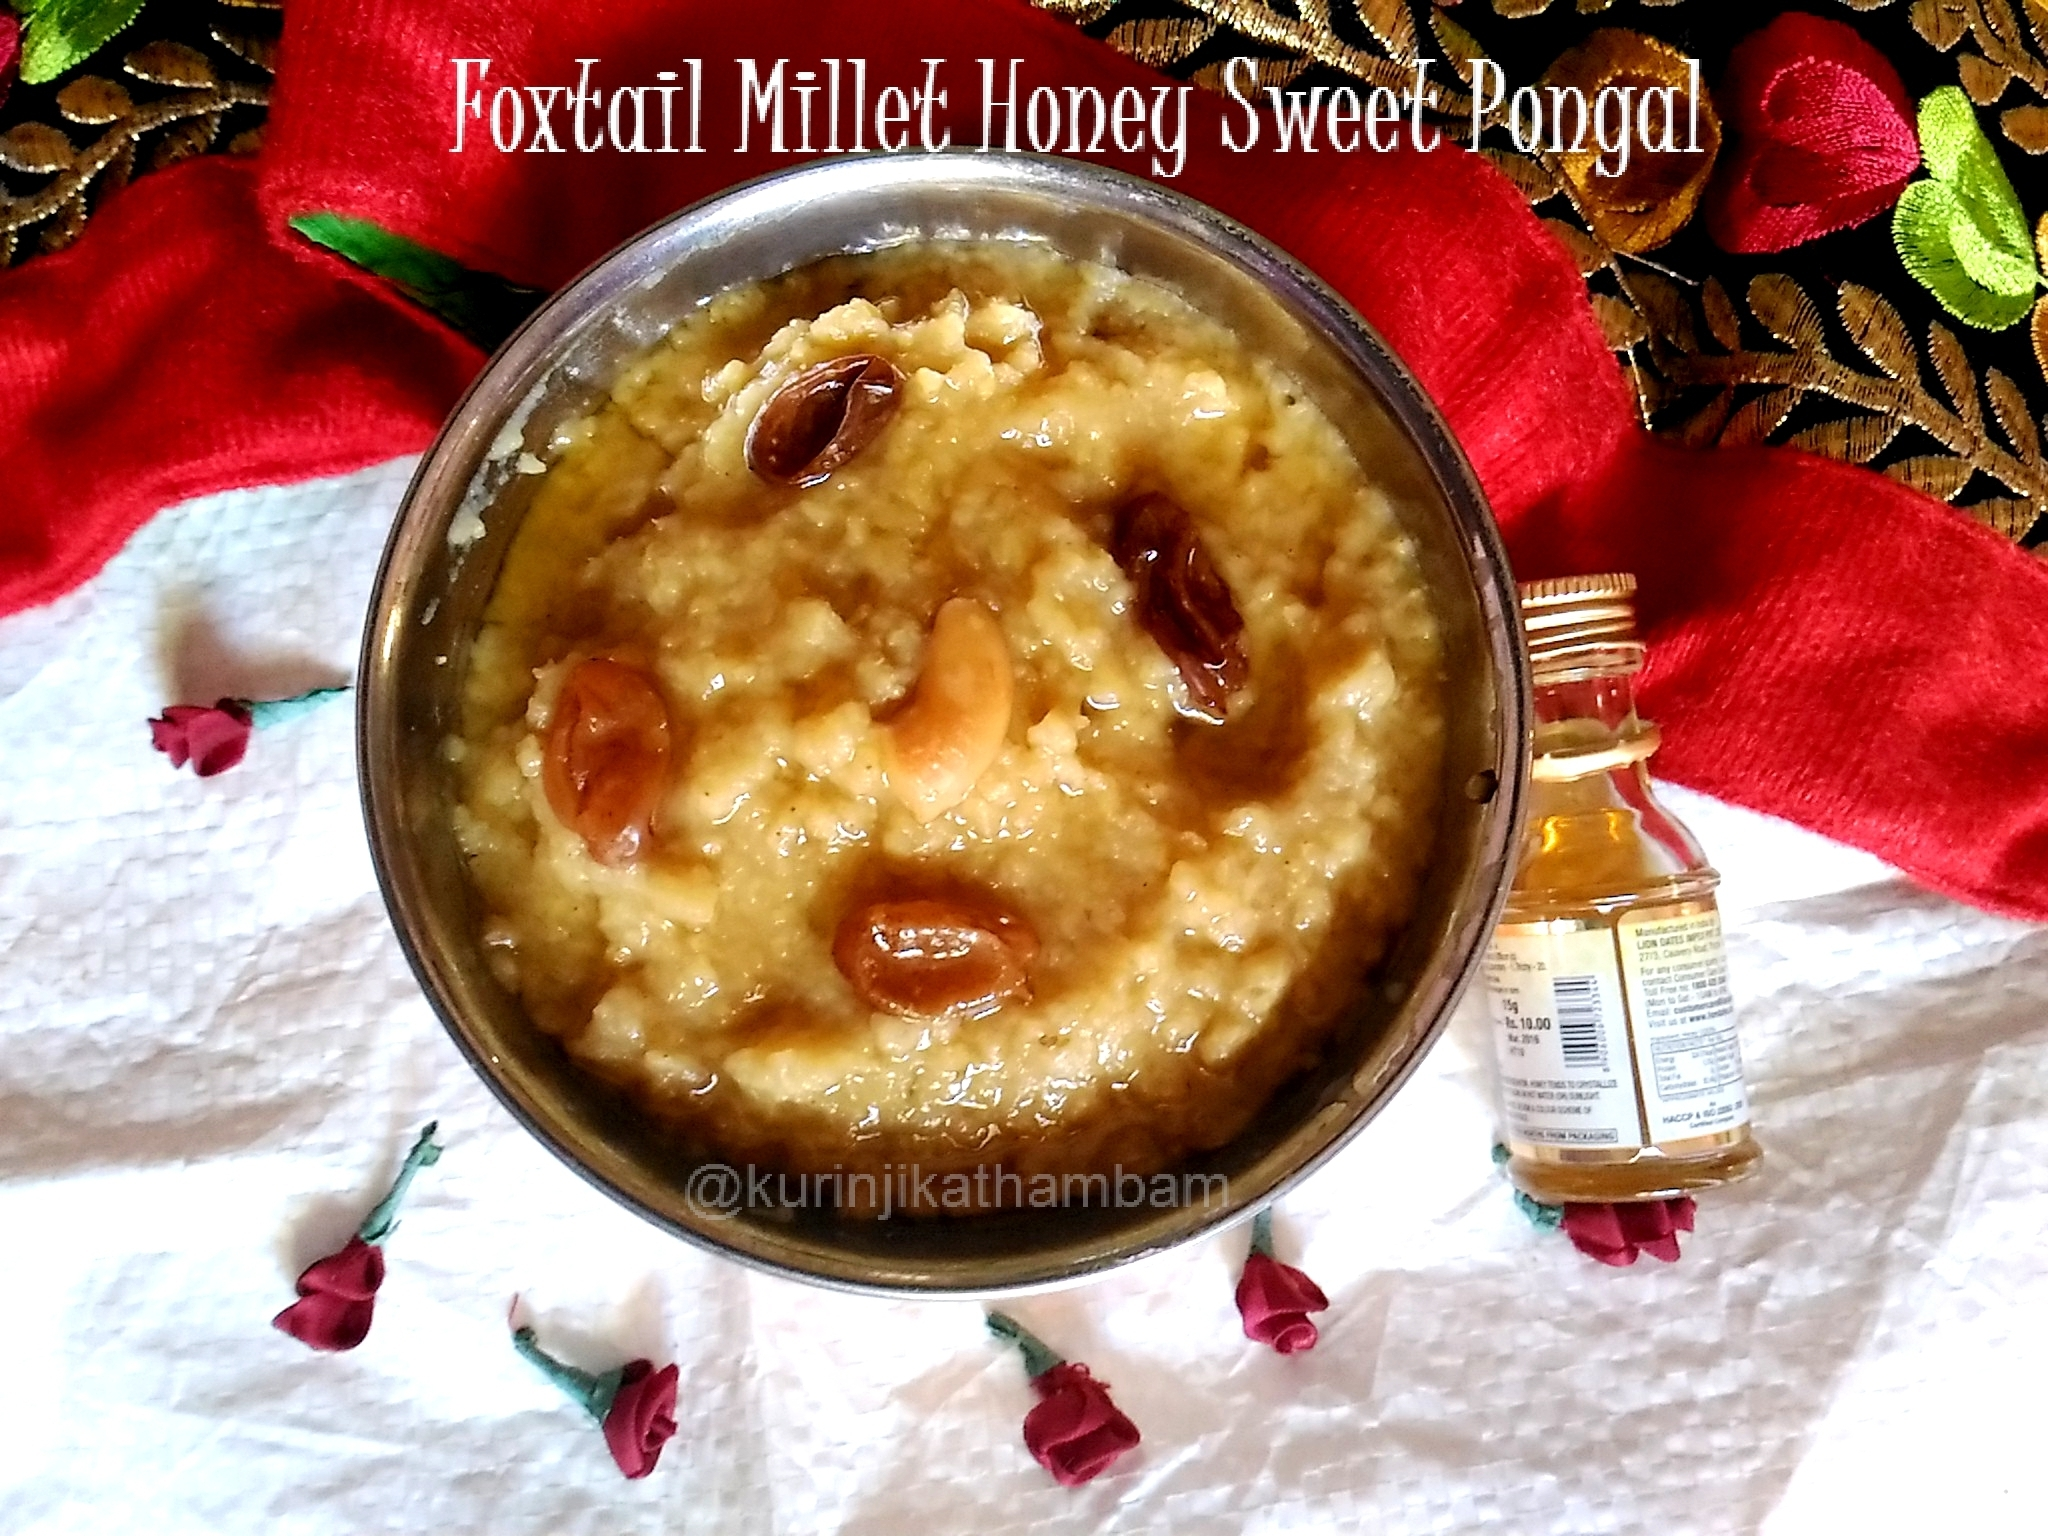 Thinai Thean Sakkarai Pongal / Foxtail Millet Honey Sweet Pongal